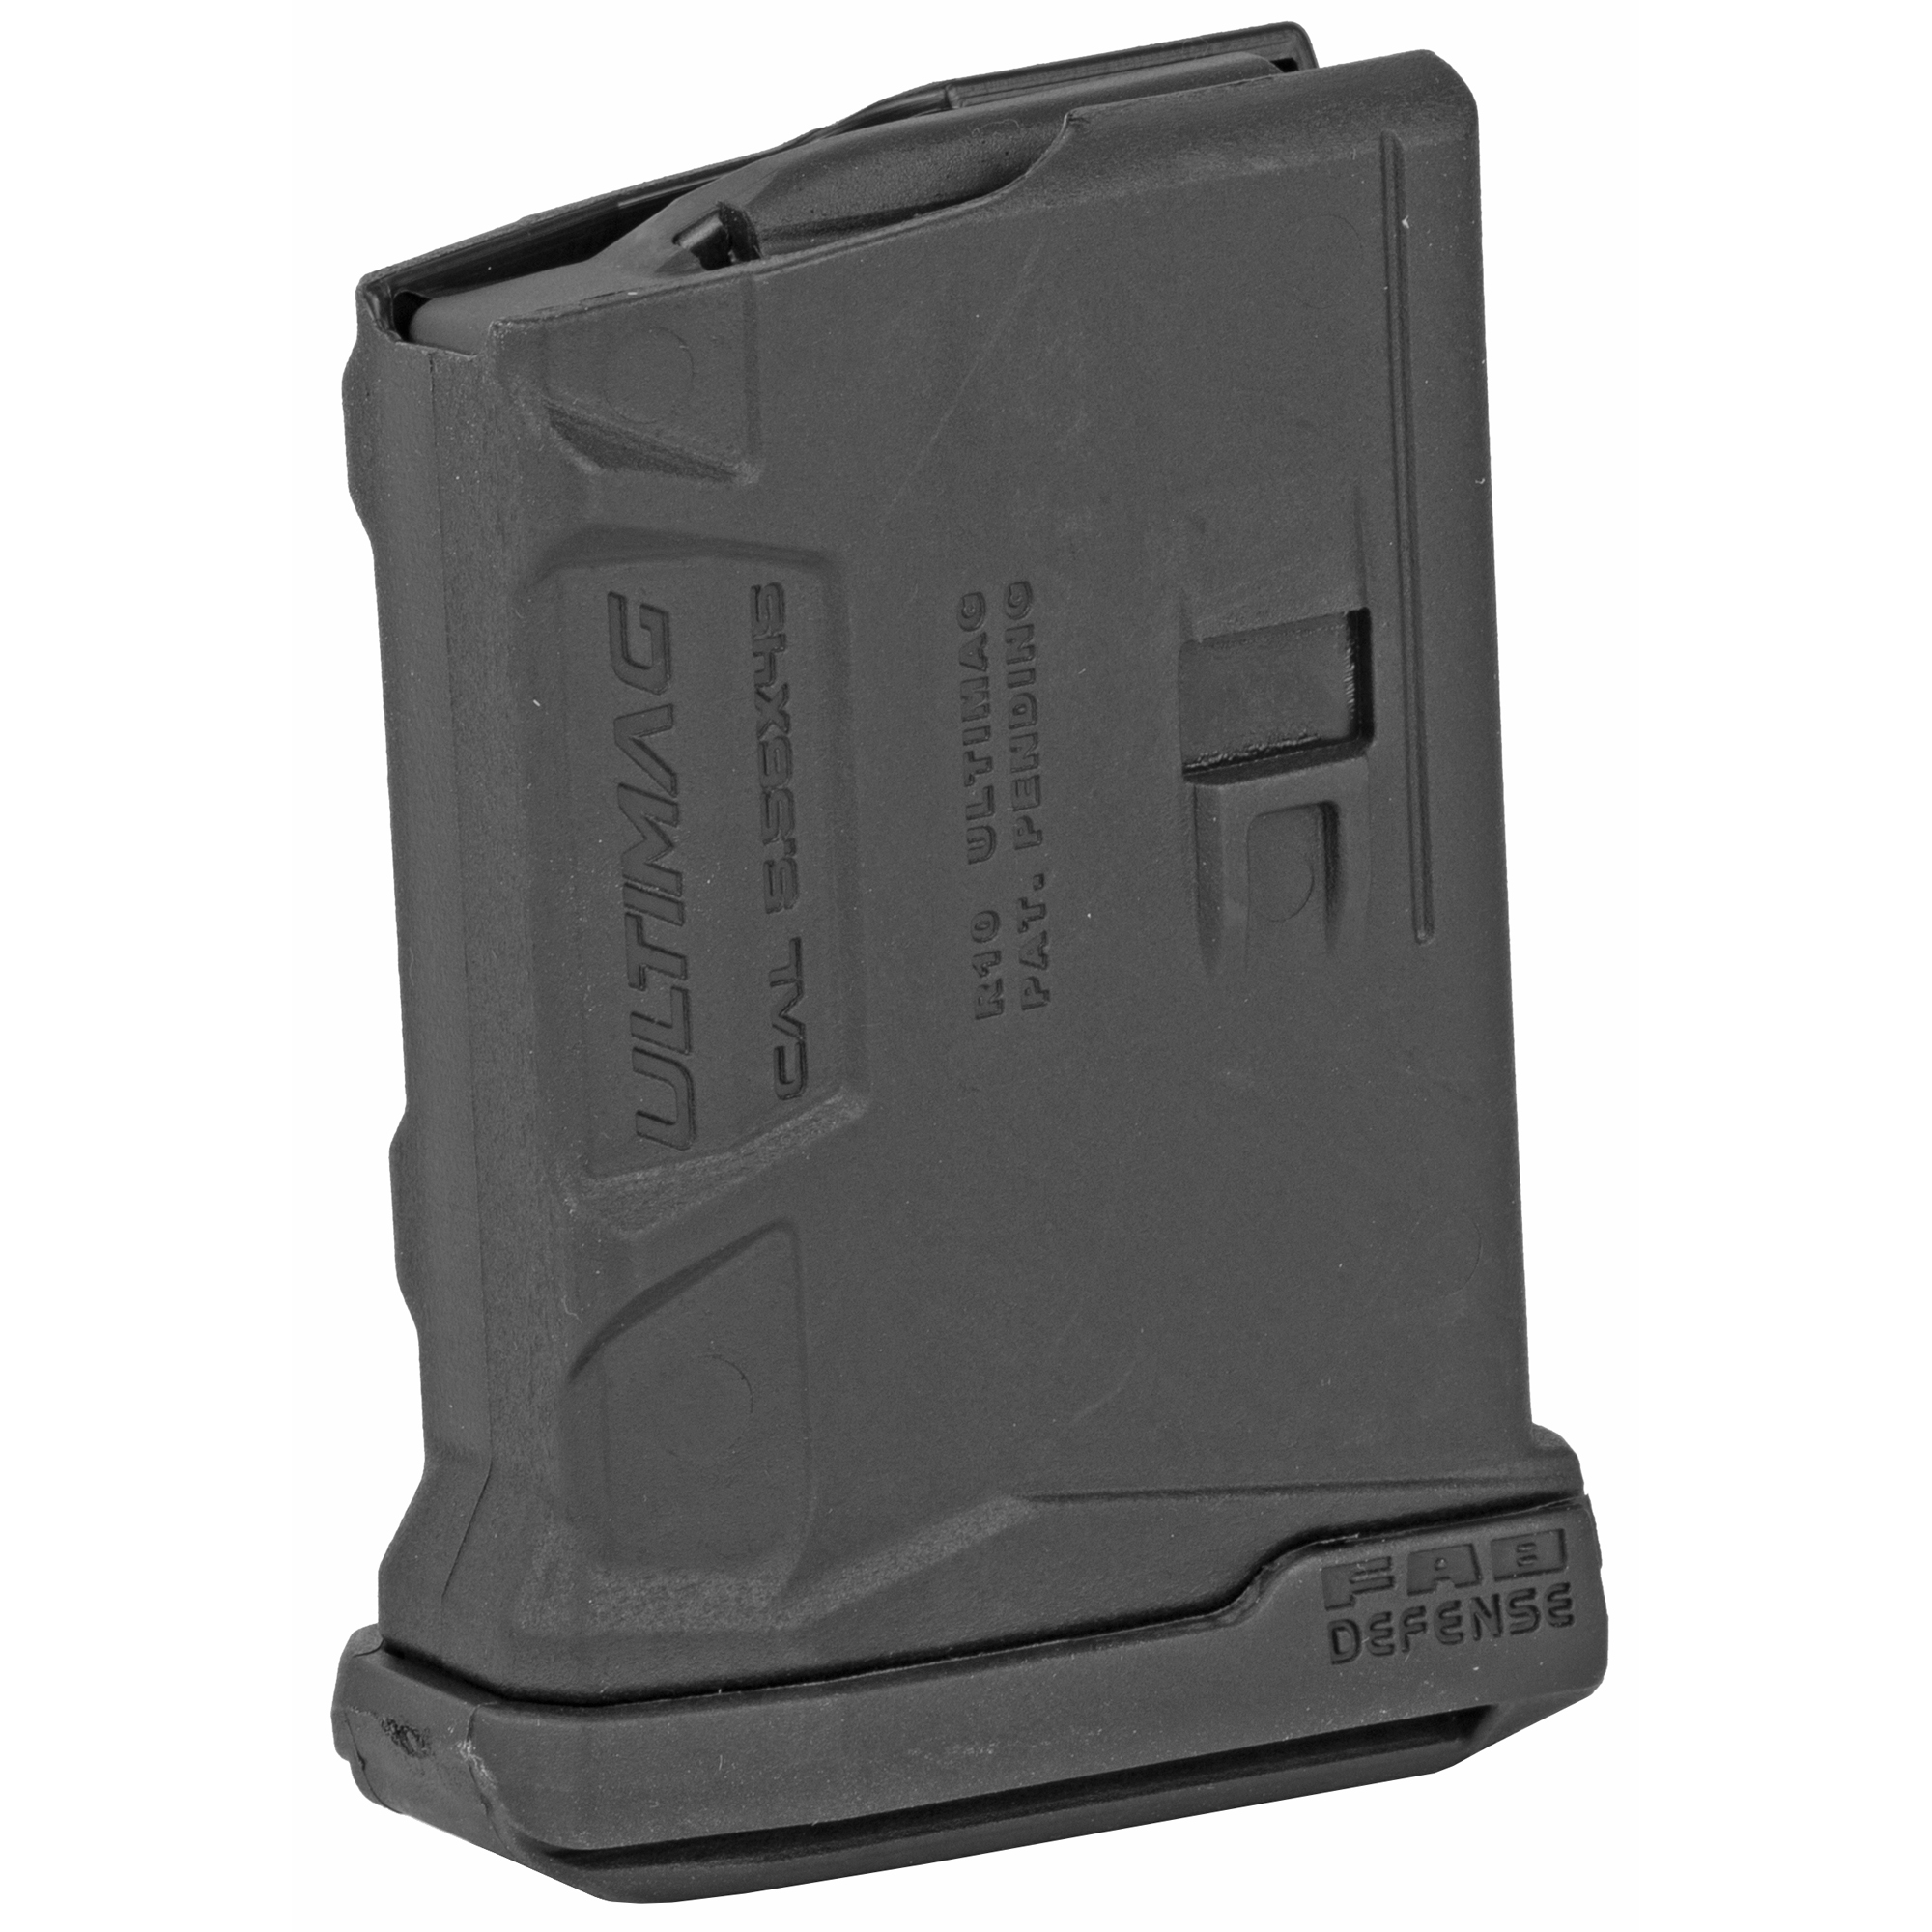 "The FAB Defense AR15 Magazine is a high quality aftermarket magazine made of durable"" lightweight polymer. It features an ergonomic design made for enhanced grip and faster magazine changes."